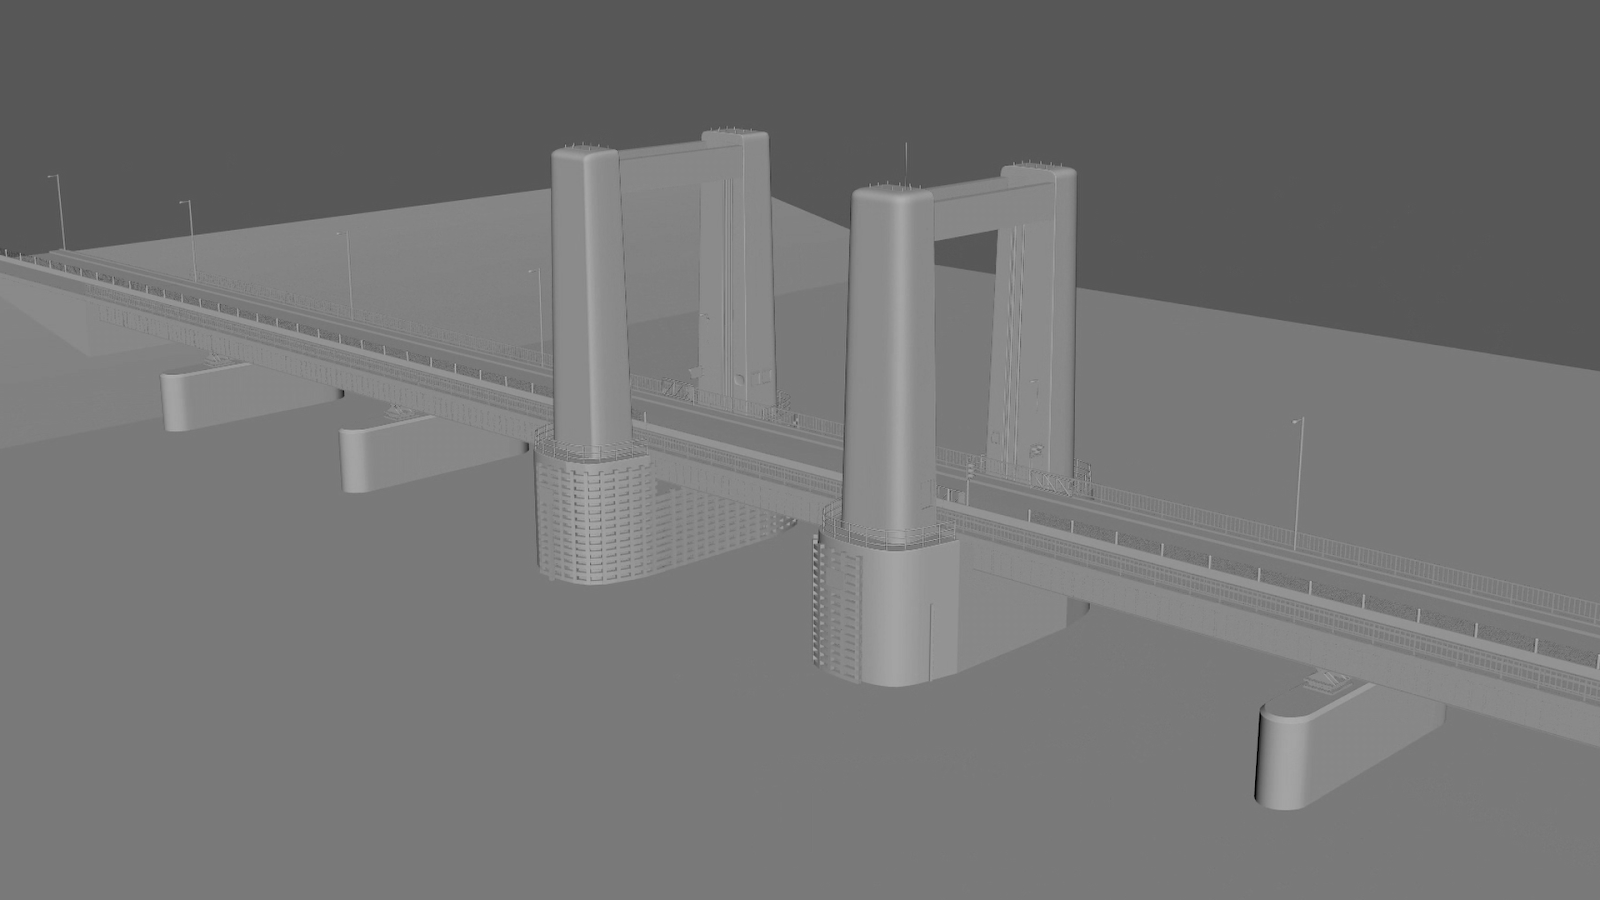 Proxy CG model of the bridge in ITV's Too Close that had been generated in pre-production for use in shot planning.